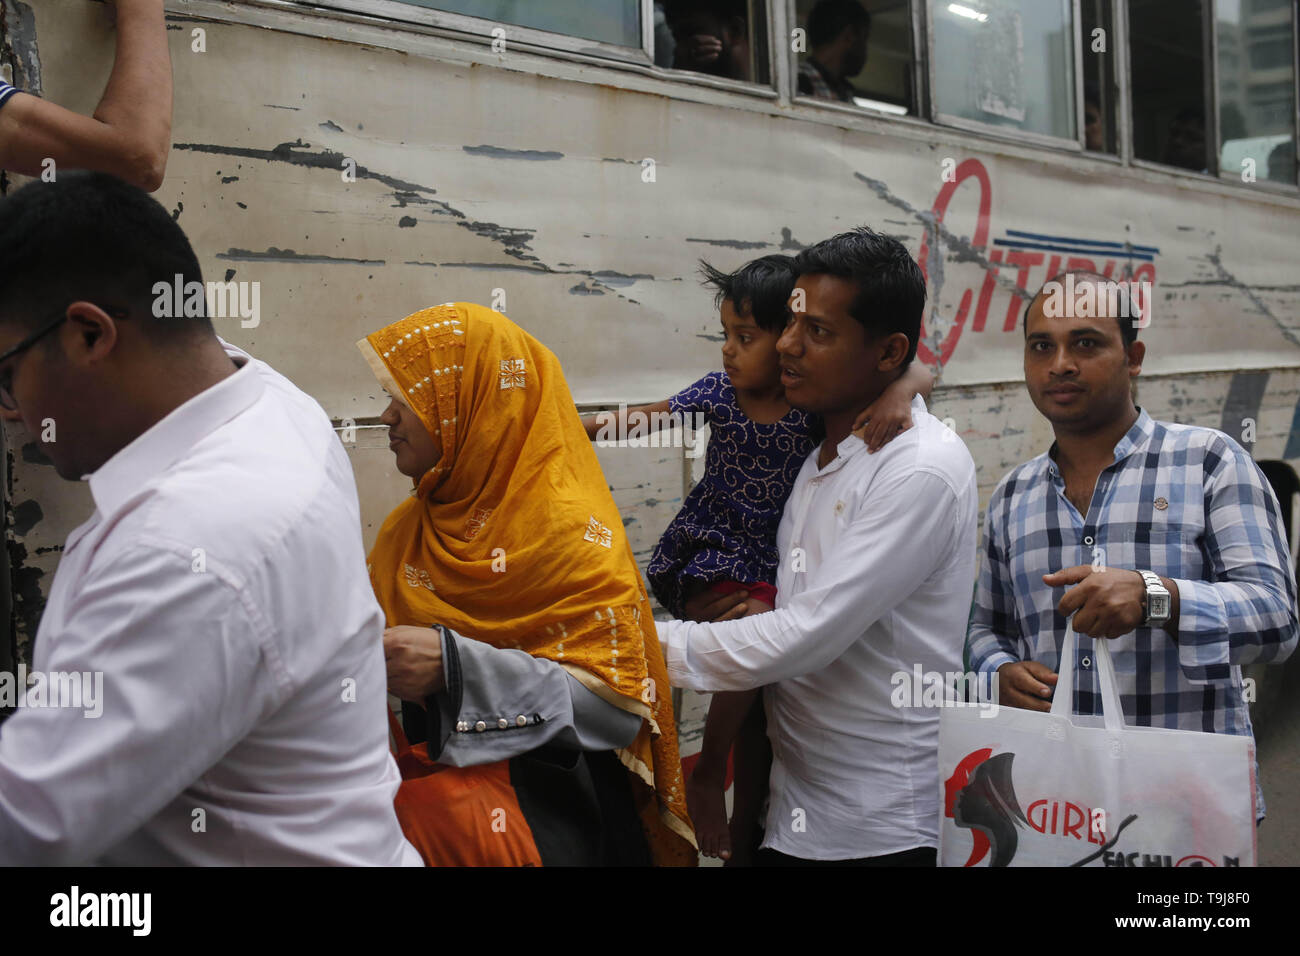 May 19, 2019 - Dhaka, Bangladesh - A family with a child try to get on a public transport in a rush hour during Ramadan in Dhaka. Passenger transport service is very incomprehensible for women in the capital. (Credit Image: © MD Mehedi Hasan/ZUMA Wire) Stock Photo